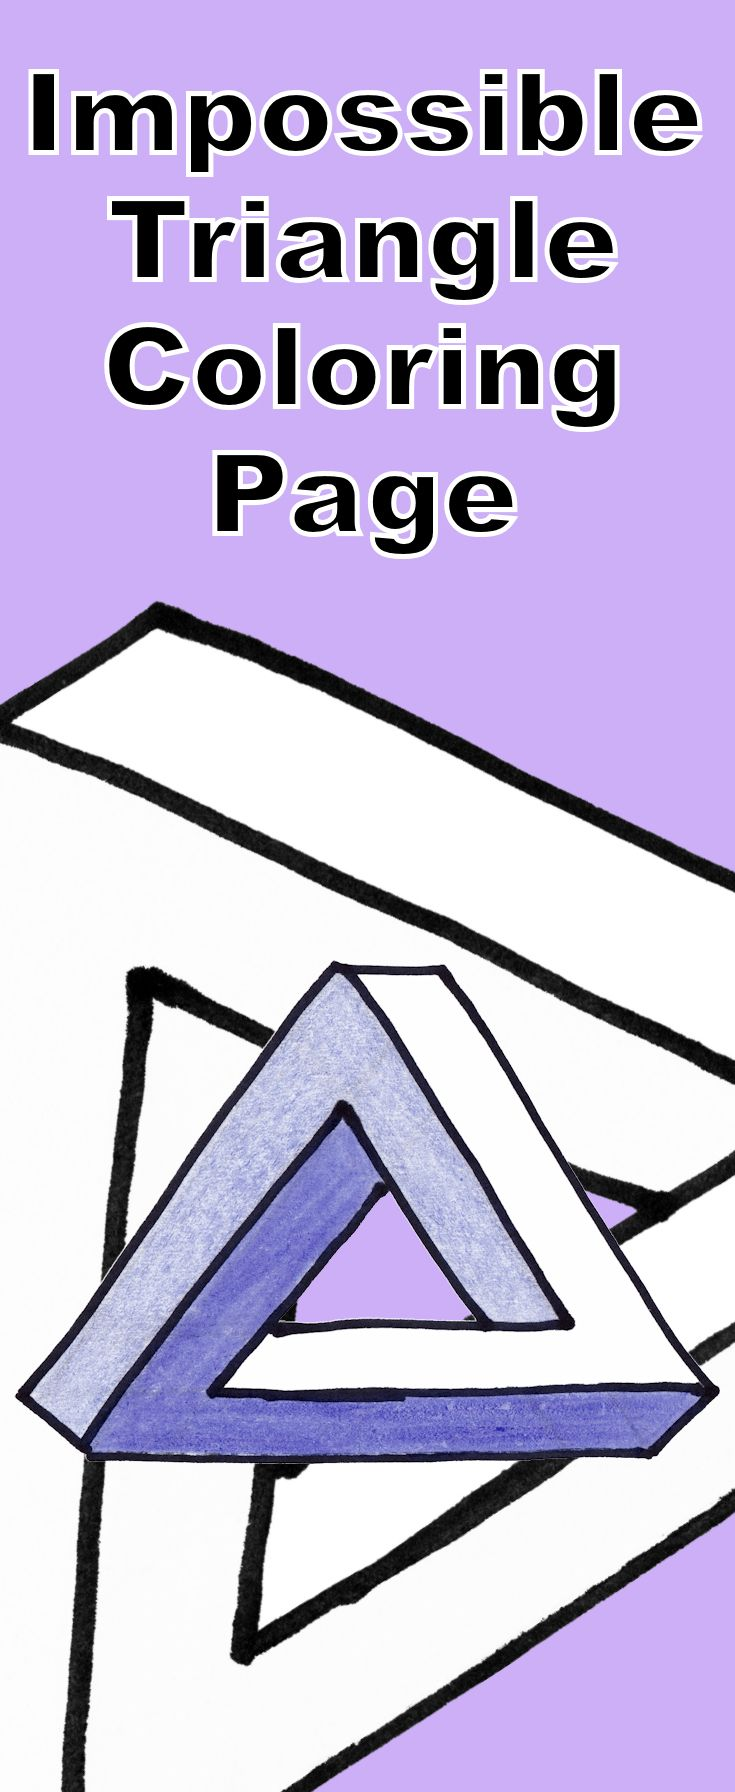 Impossible triangle coloring page which includes a tutorial video to ...